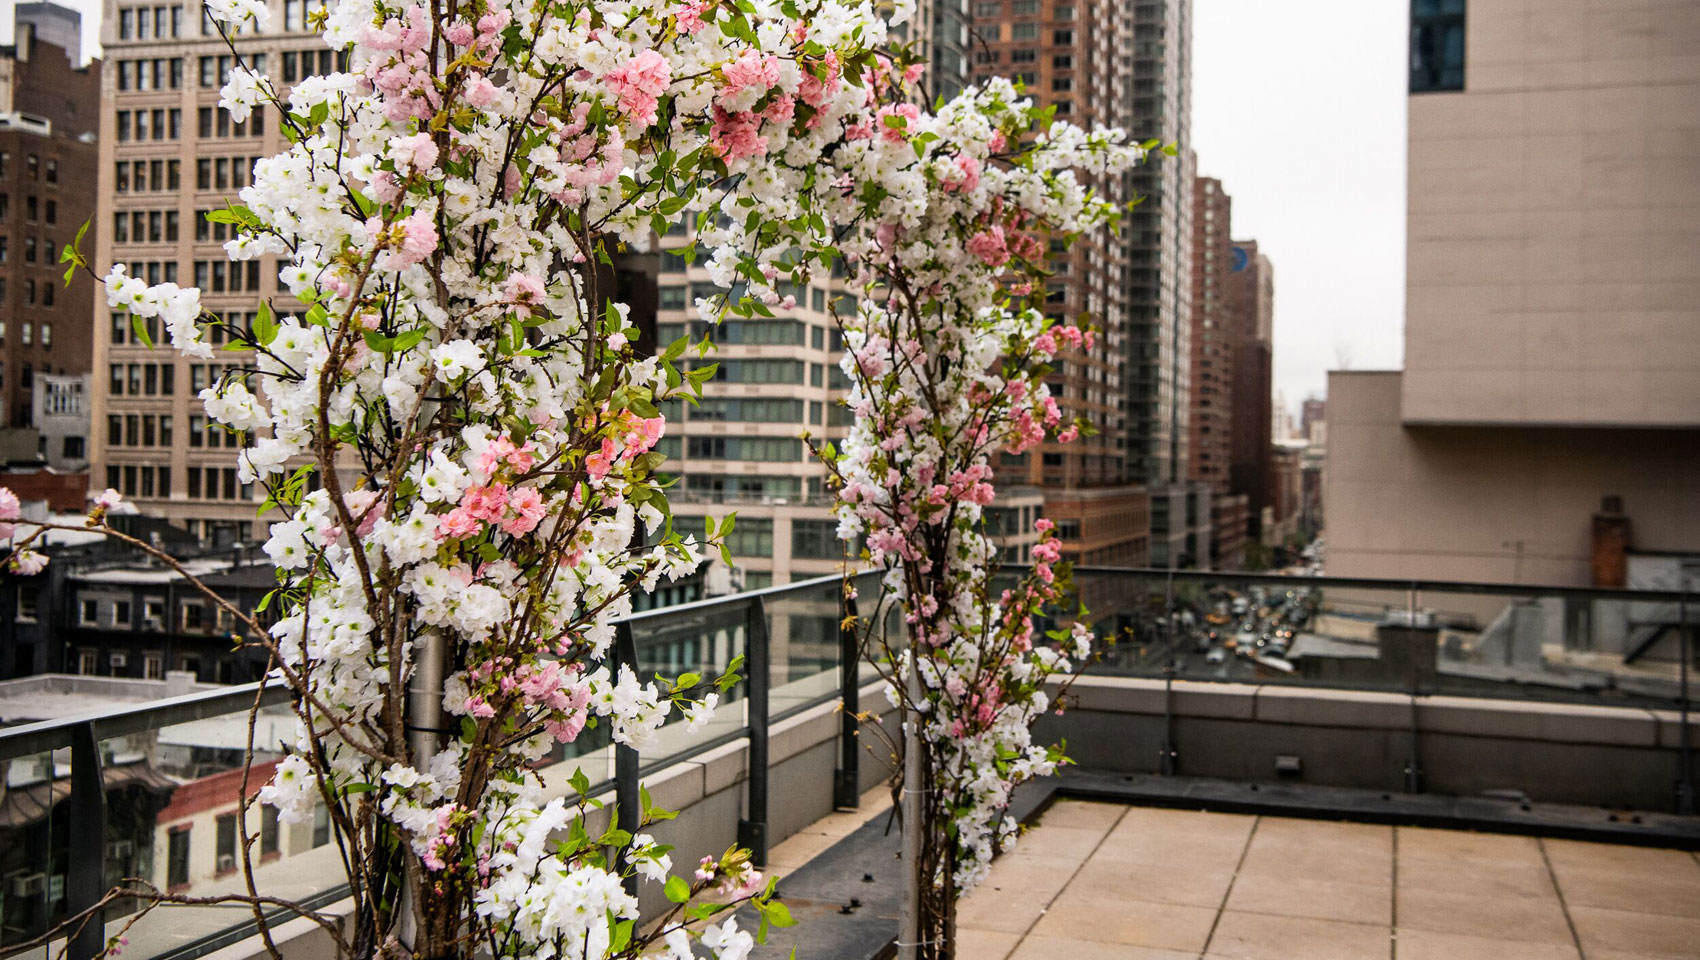 wedding packages nyc - Alter archway made of flowers